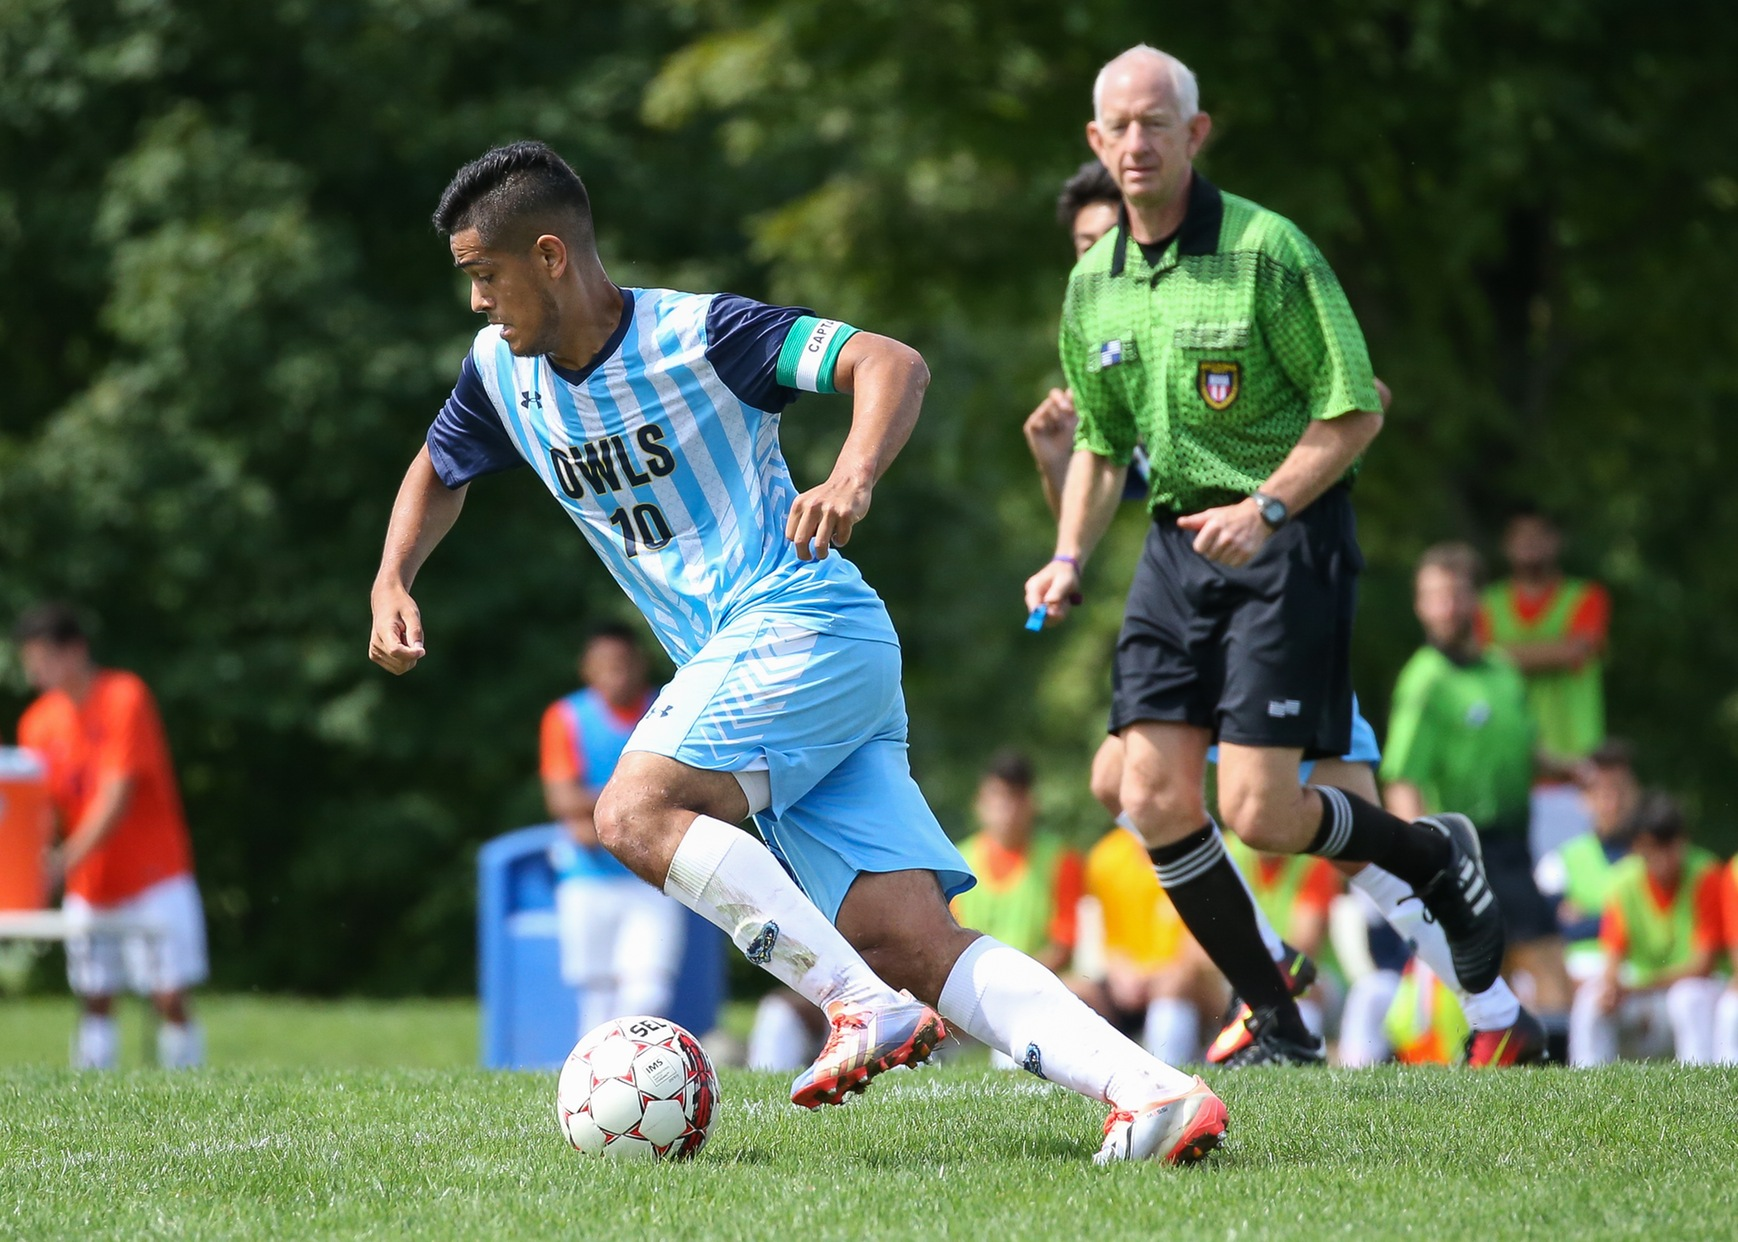 Edwin Claros Propels Sixth-Ranked Prince George's Men's Soccer Past No. 5 Nassau, 3-1